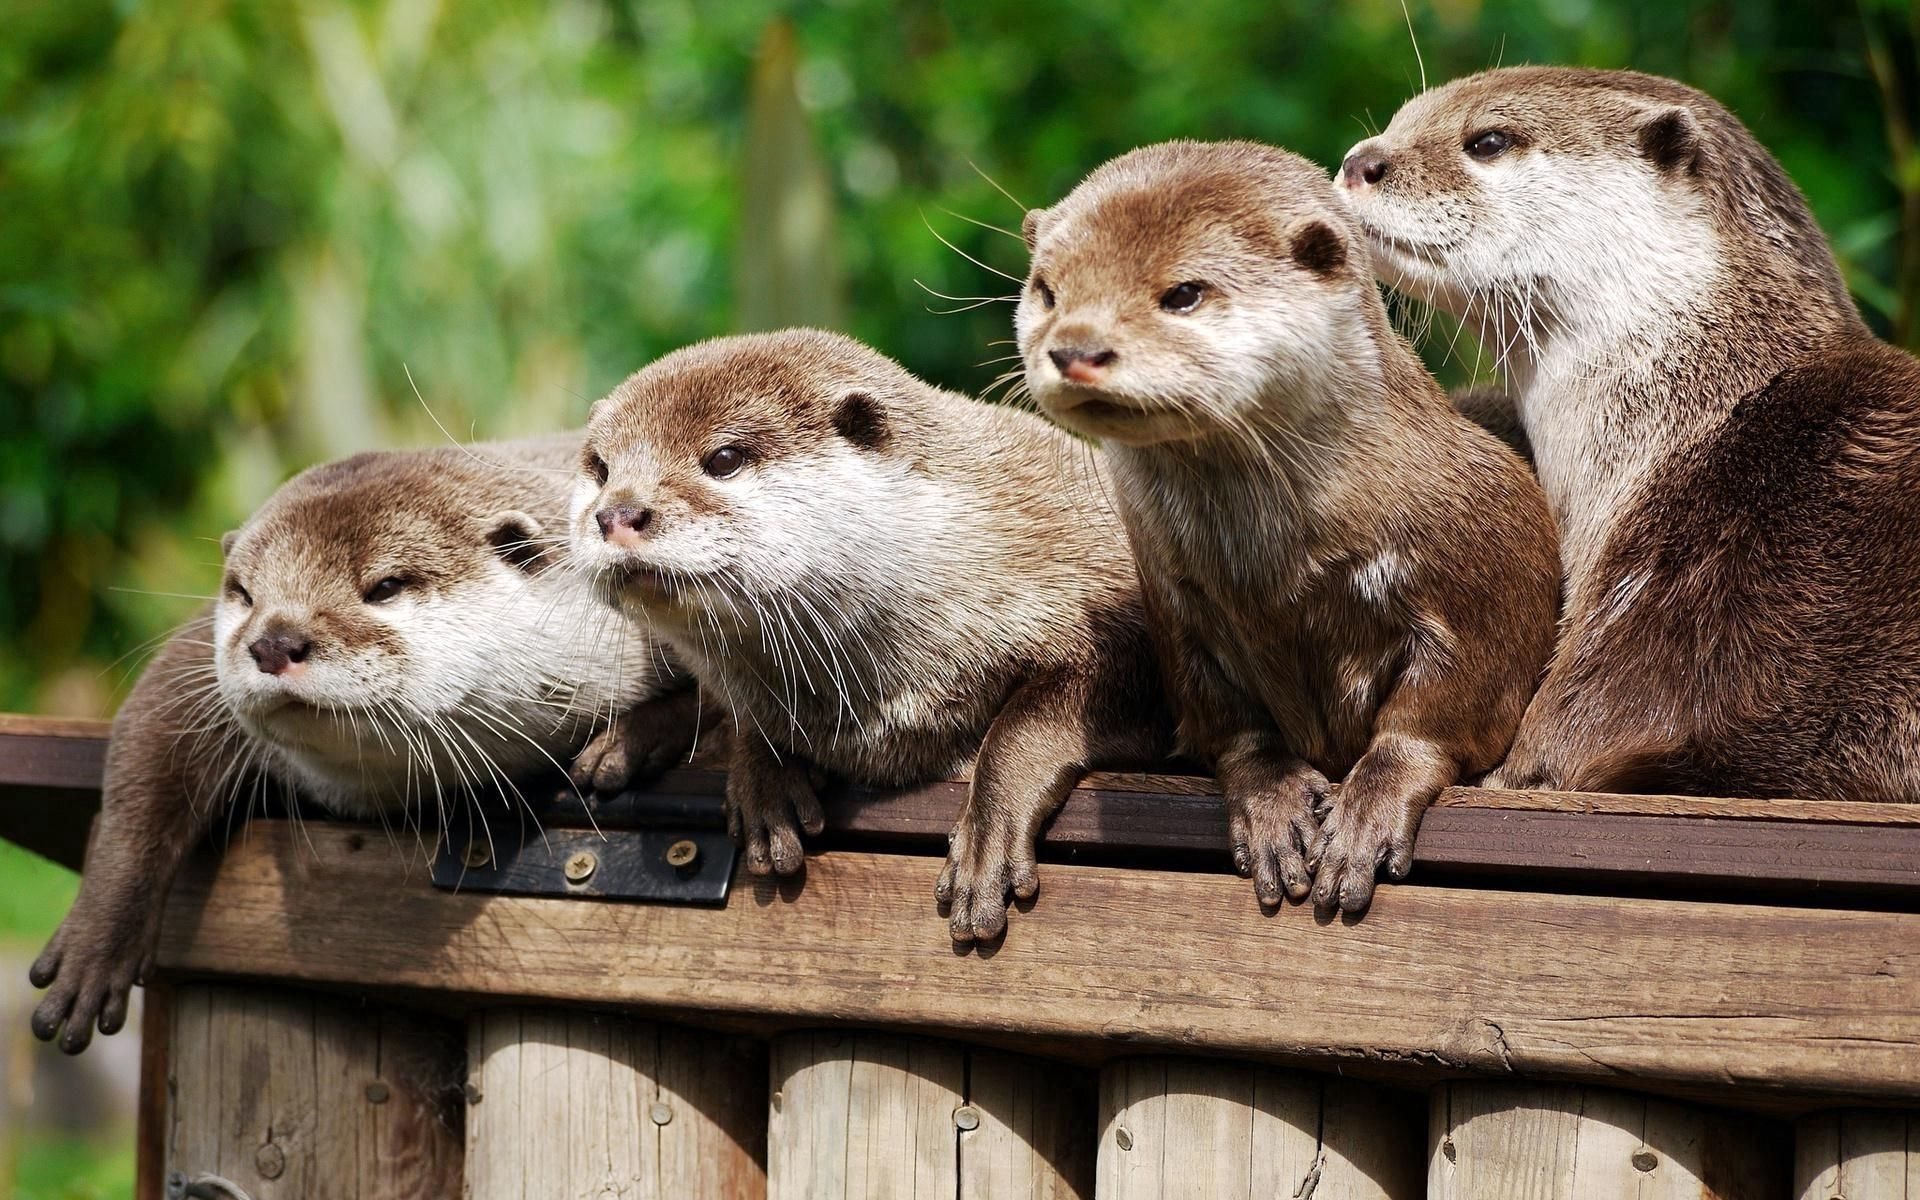 84378 free wallpaper 720x1280 for phone, download images Animals, Otters, Logs 720x1280 for mobile